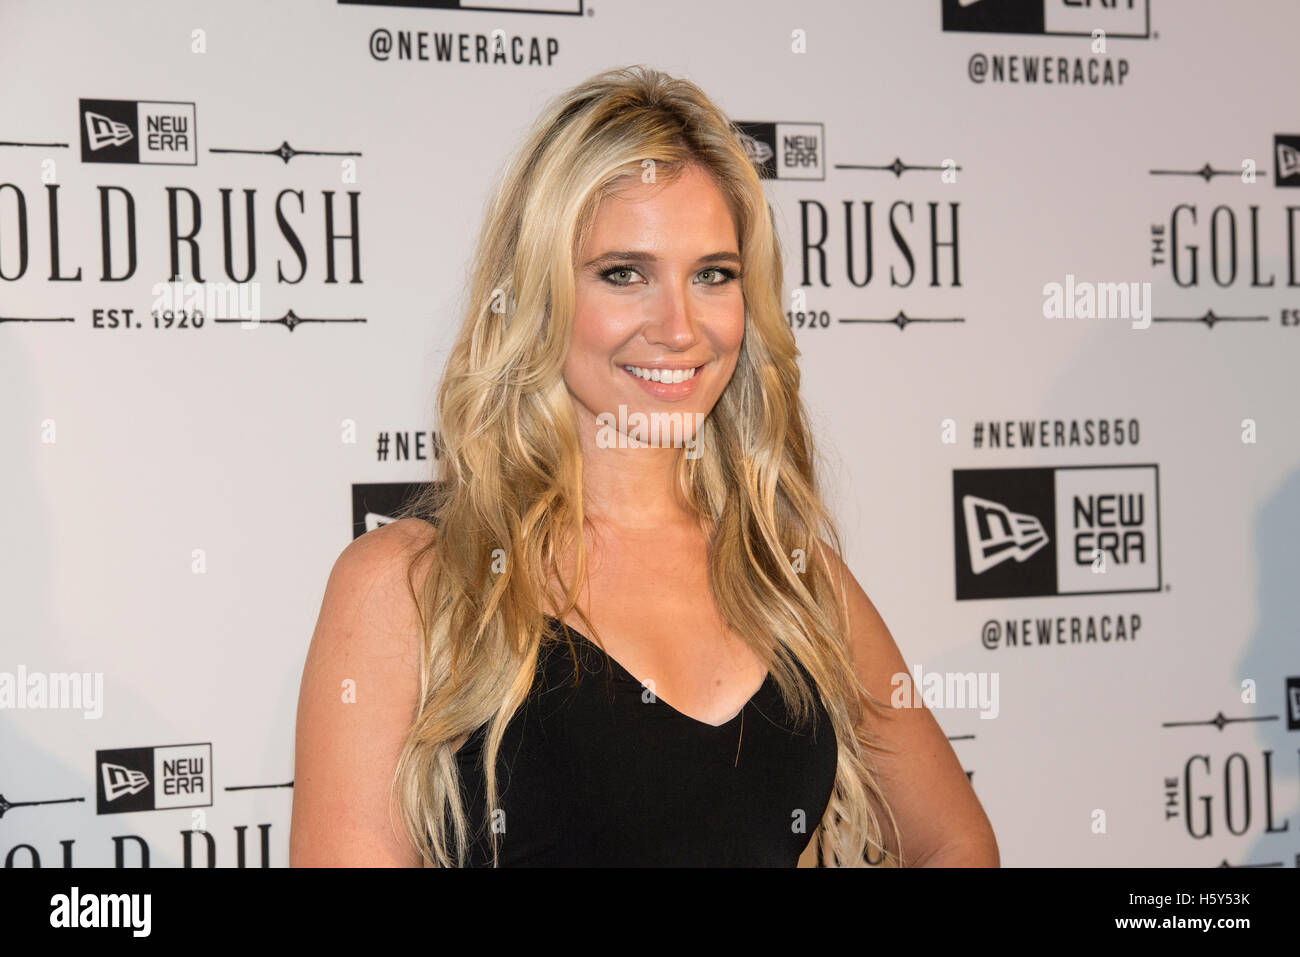 Kristine Leahy arrives on the red carpet at the Gold Rush presented by New Era Caps, San Francisco, California February Stock Photo